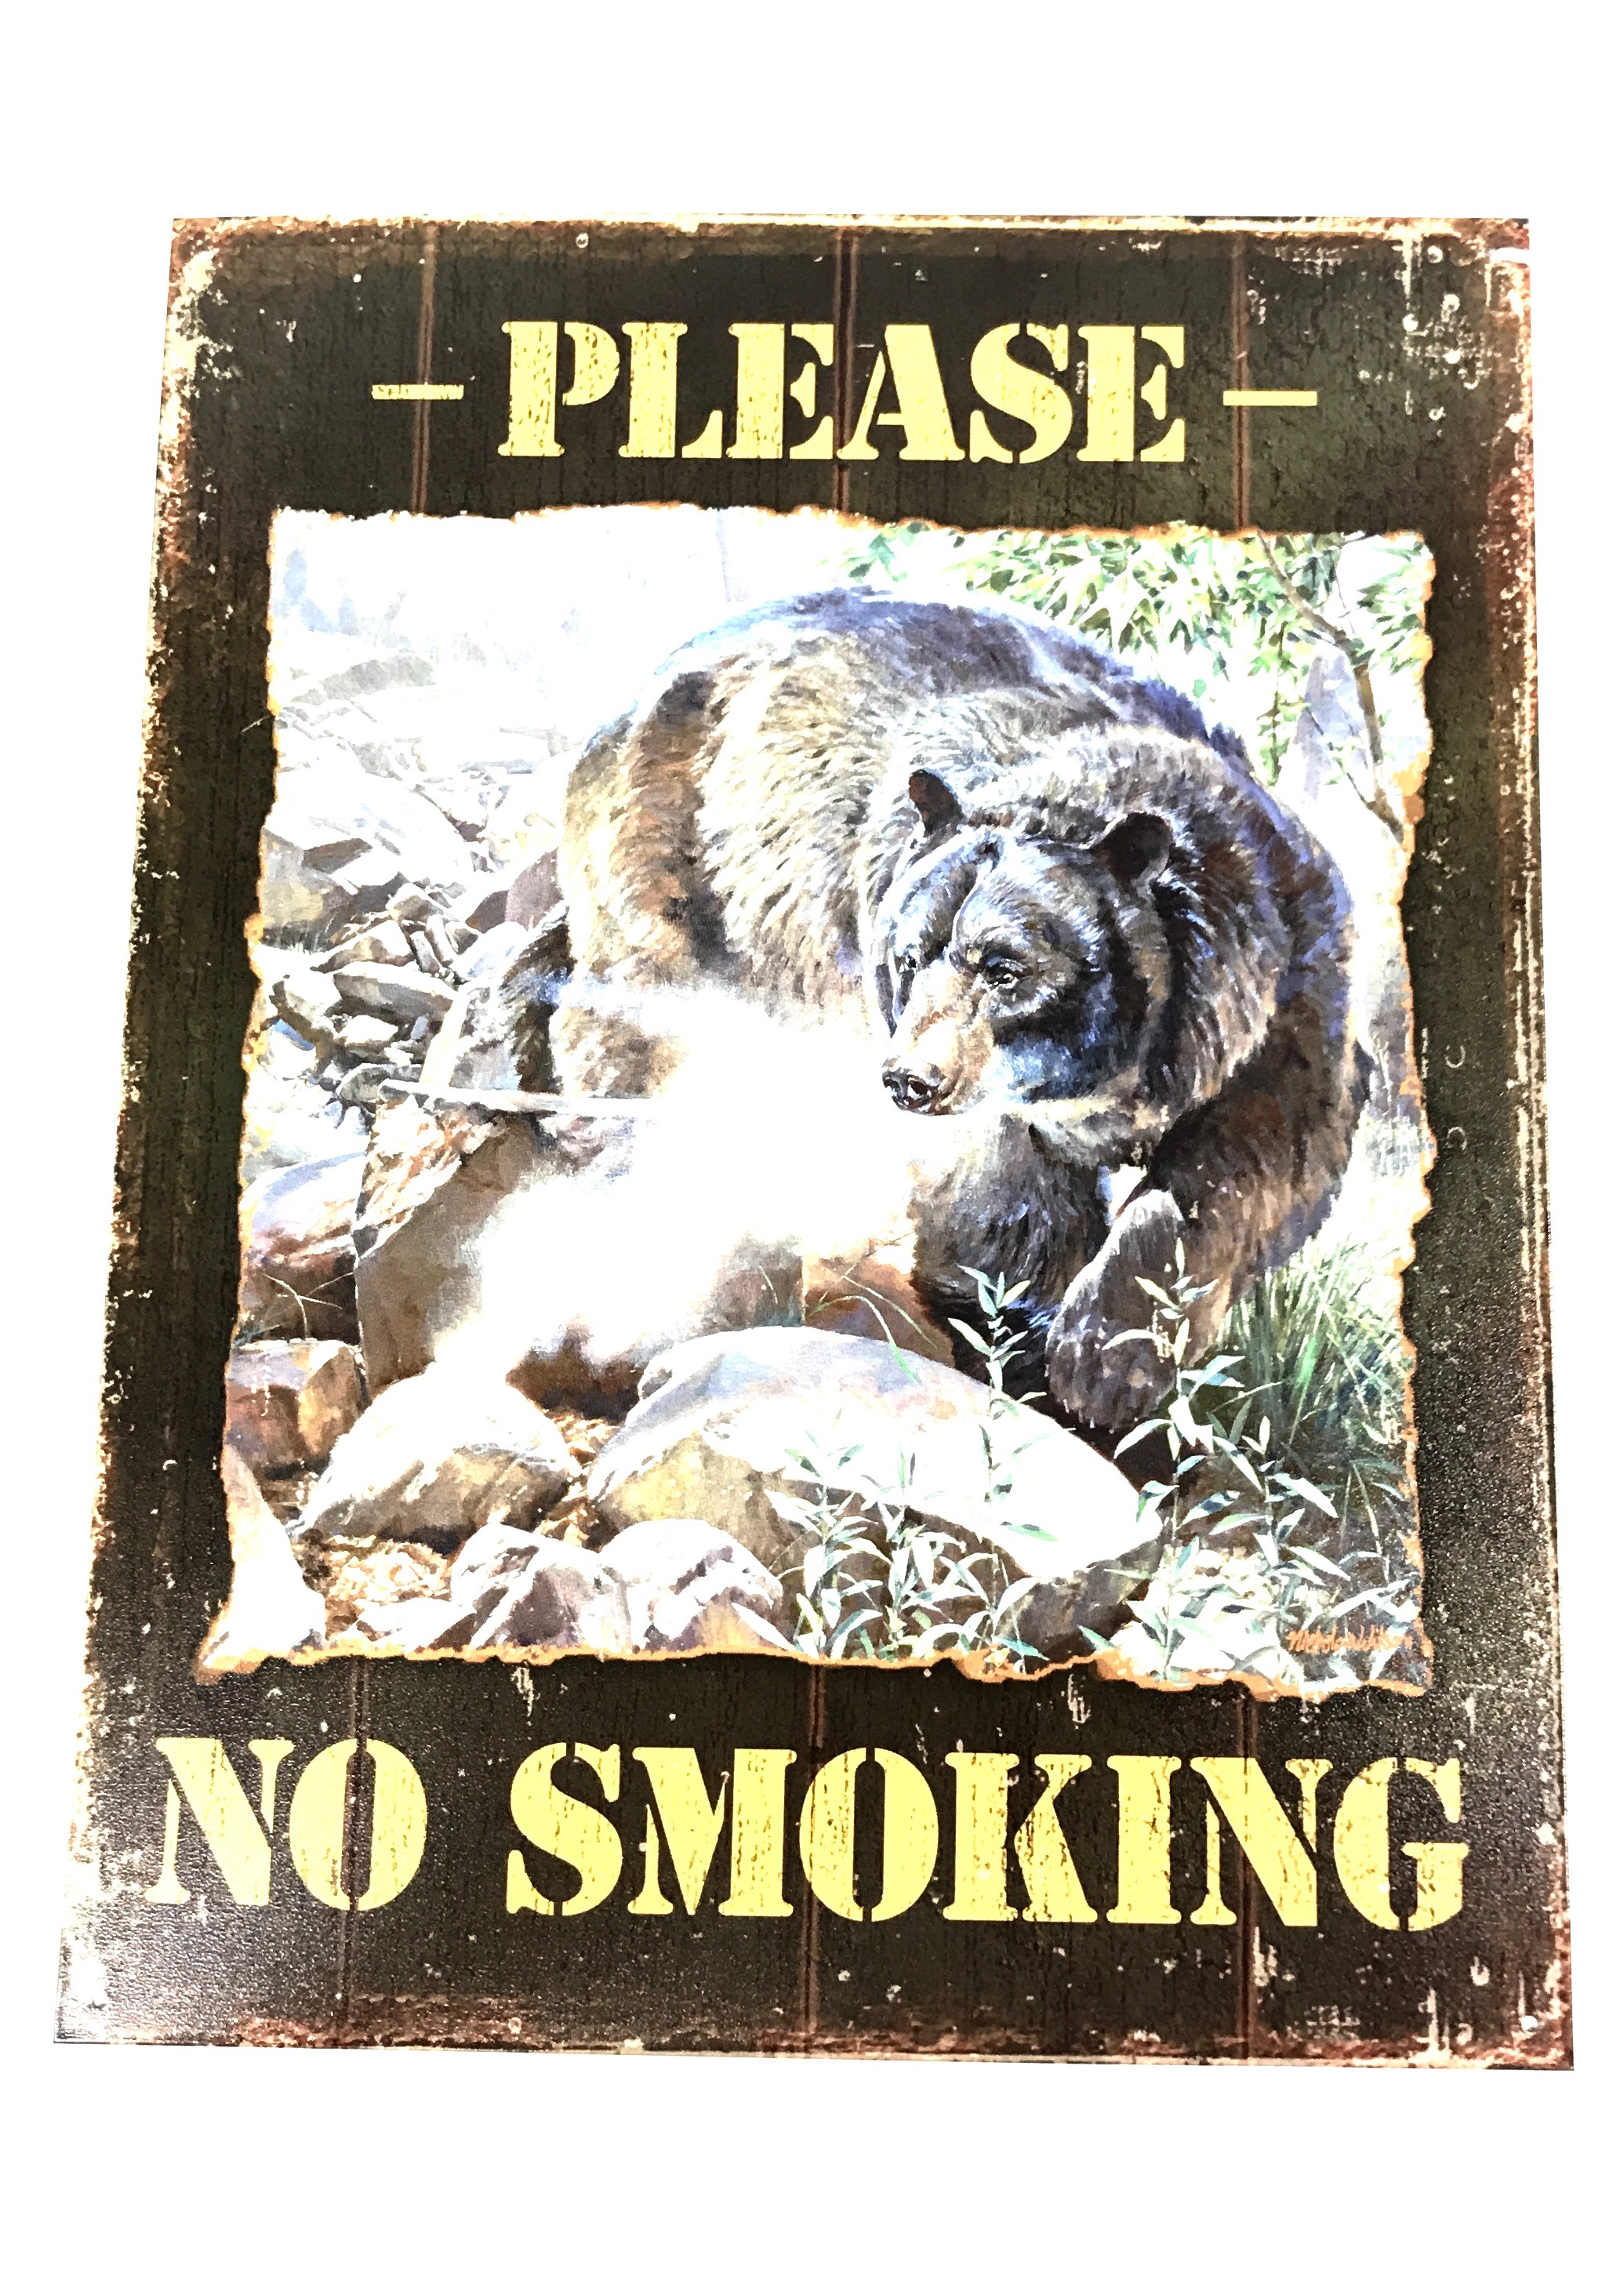 (8271) Please No Smoking 12x16 Sign